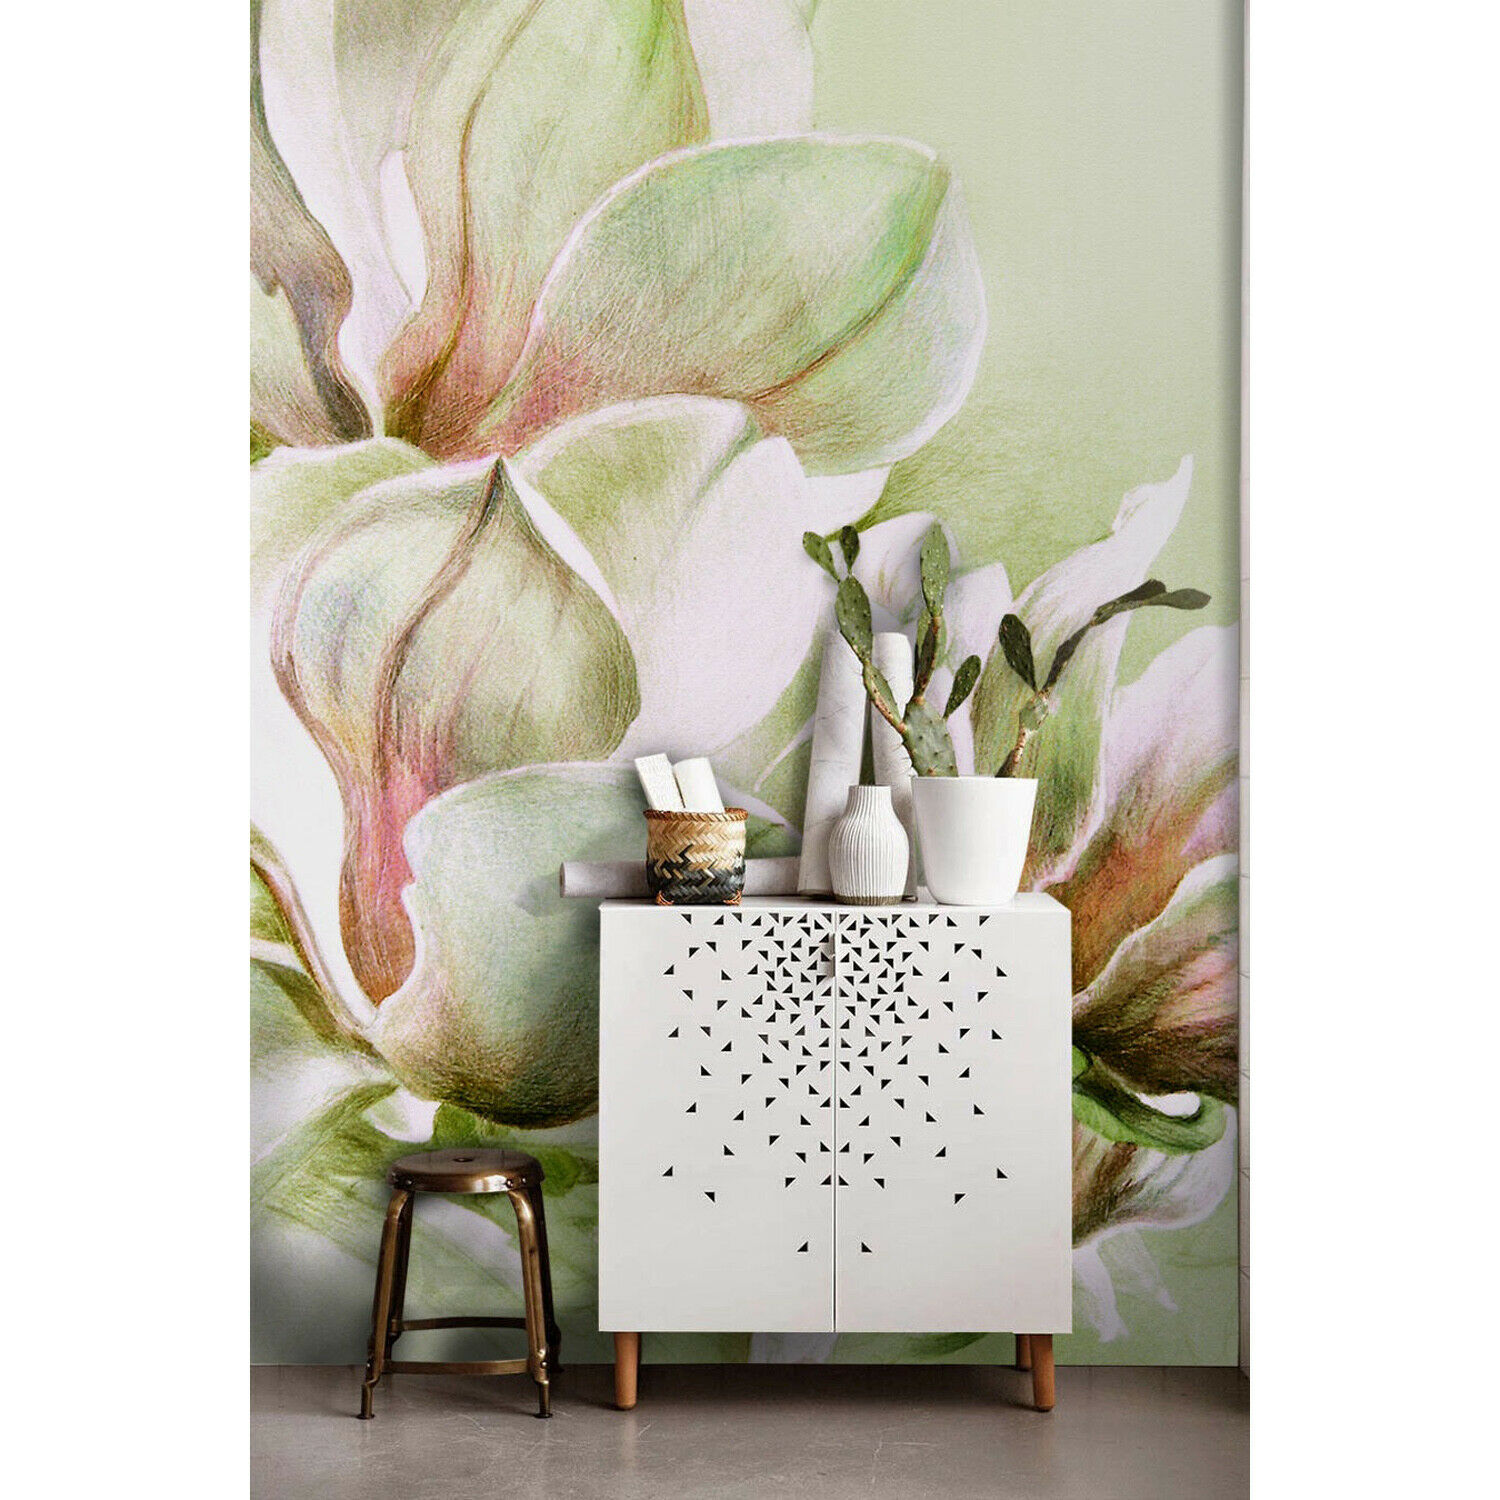 Wall Mural Fabulous Magnolia Flowers Nature Flower Floral Non-woven wallpaper